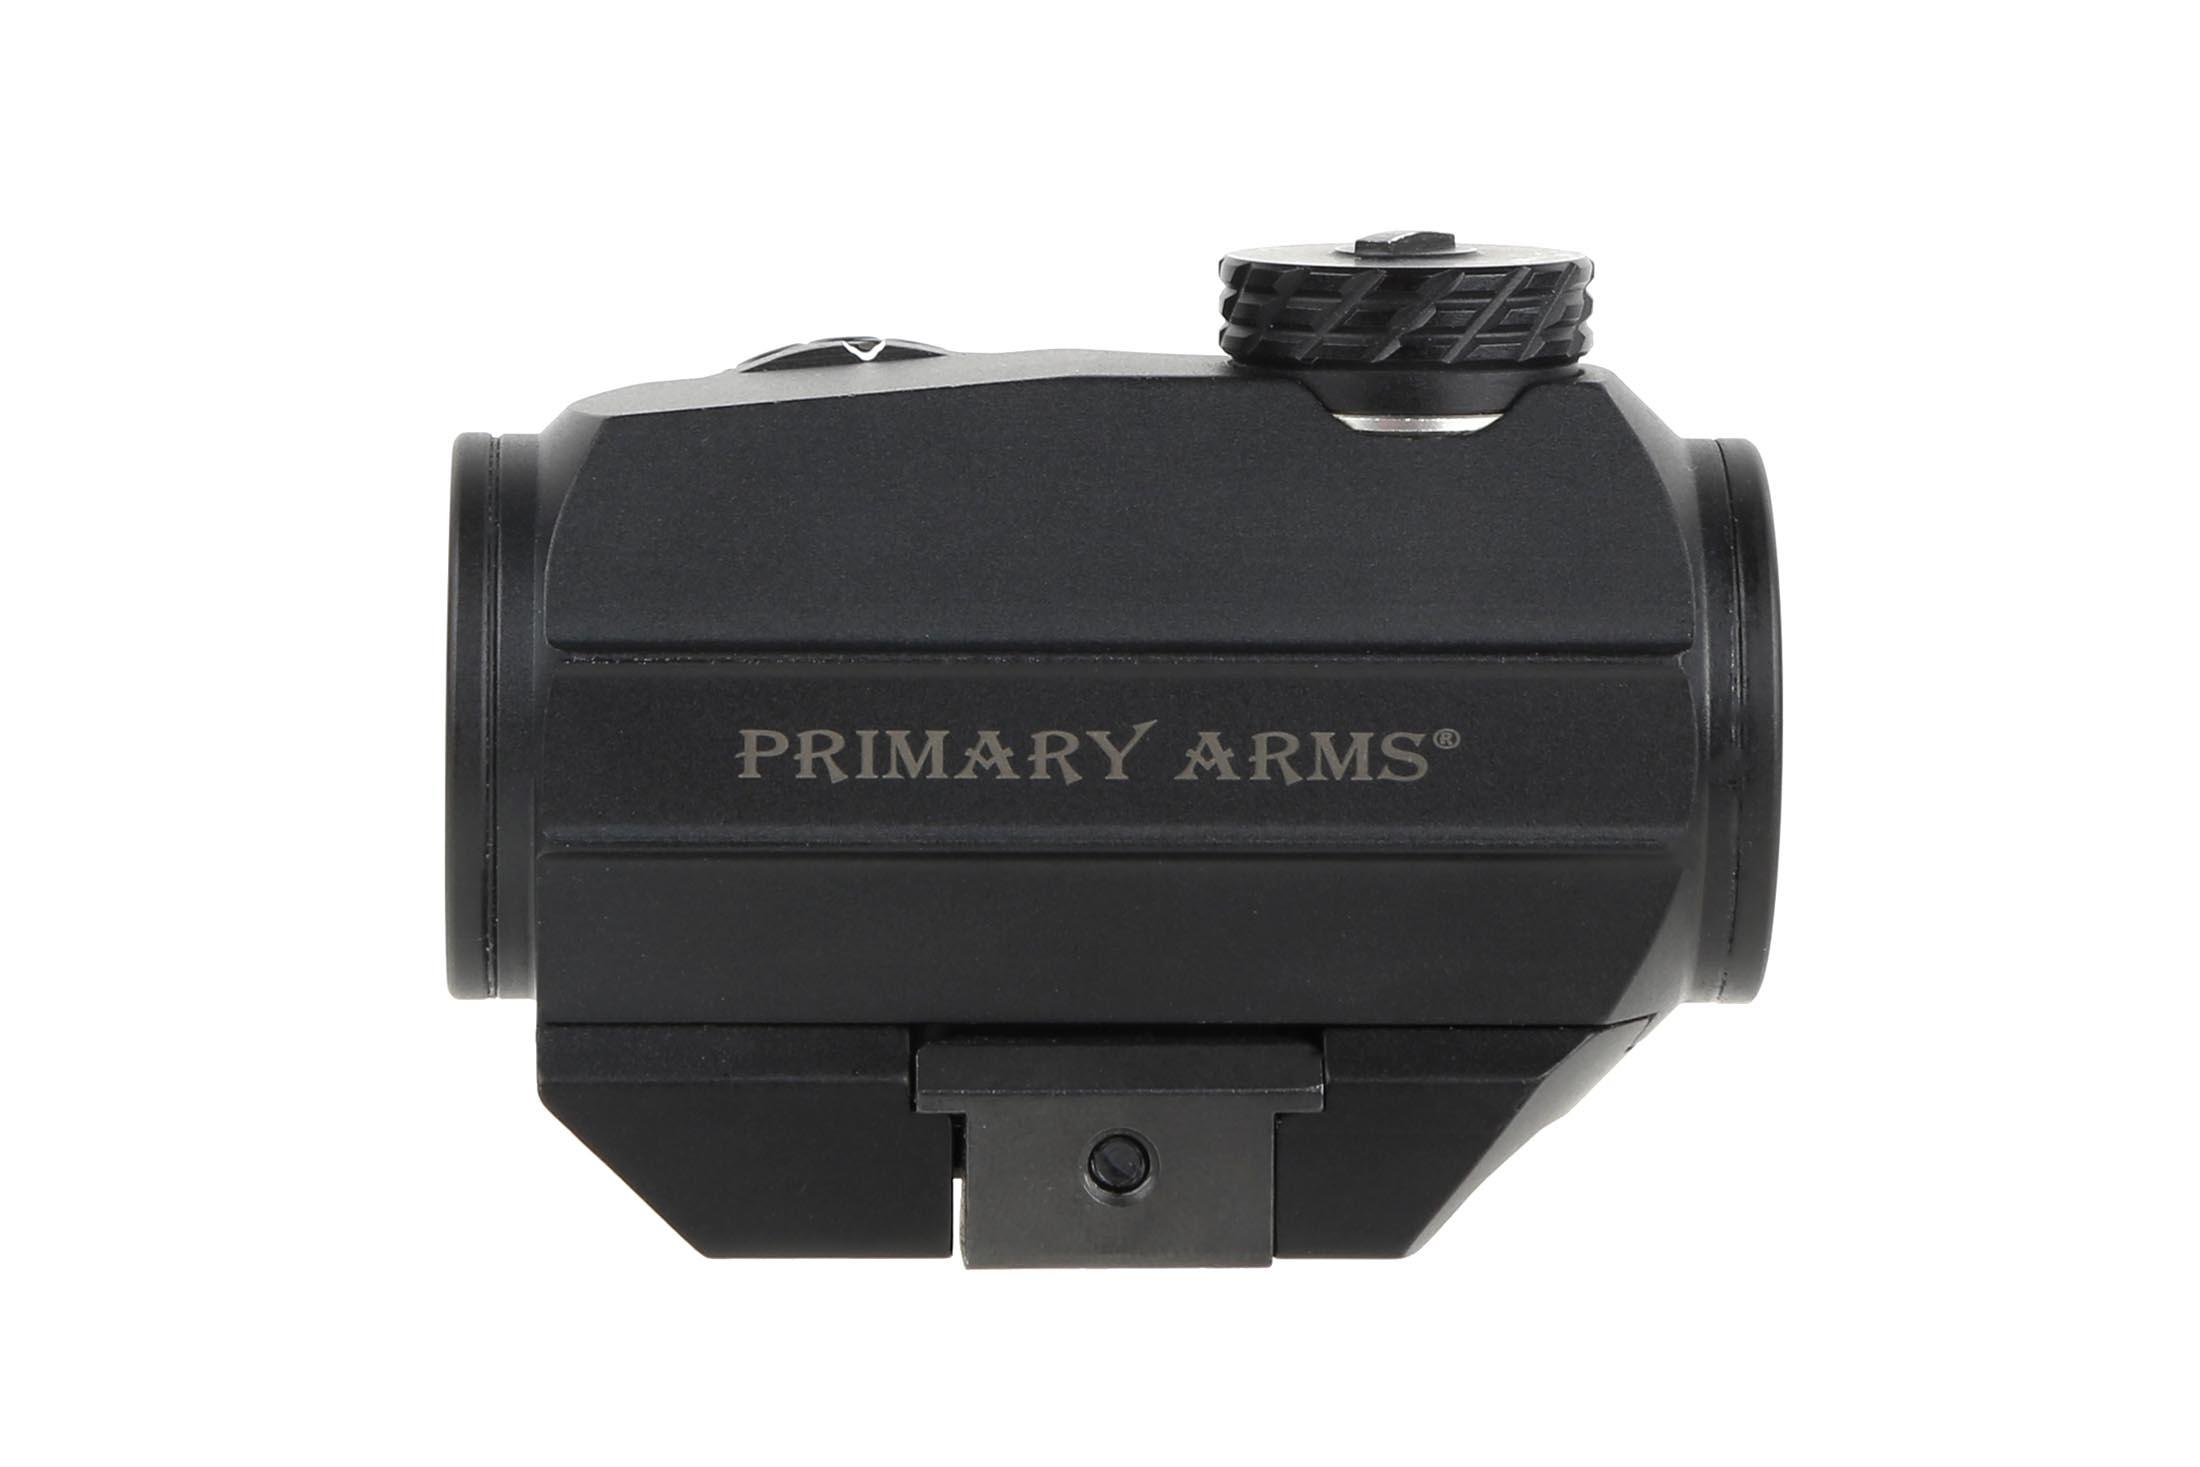 The Advanced Micro Red Dot AR-15 sight from Primary Arms features a removeable base